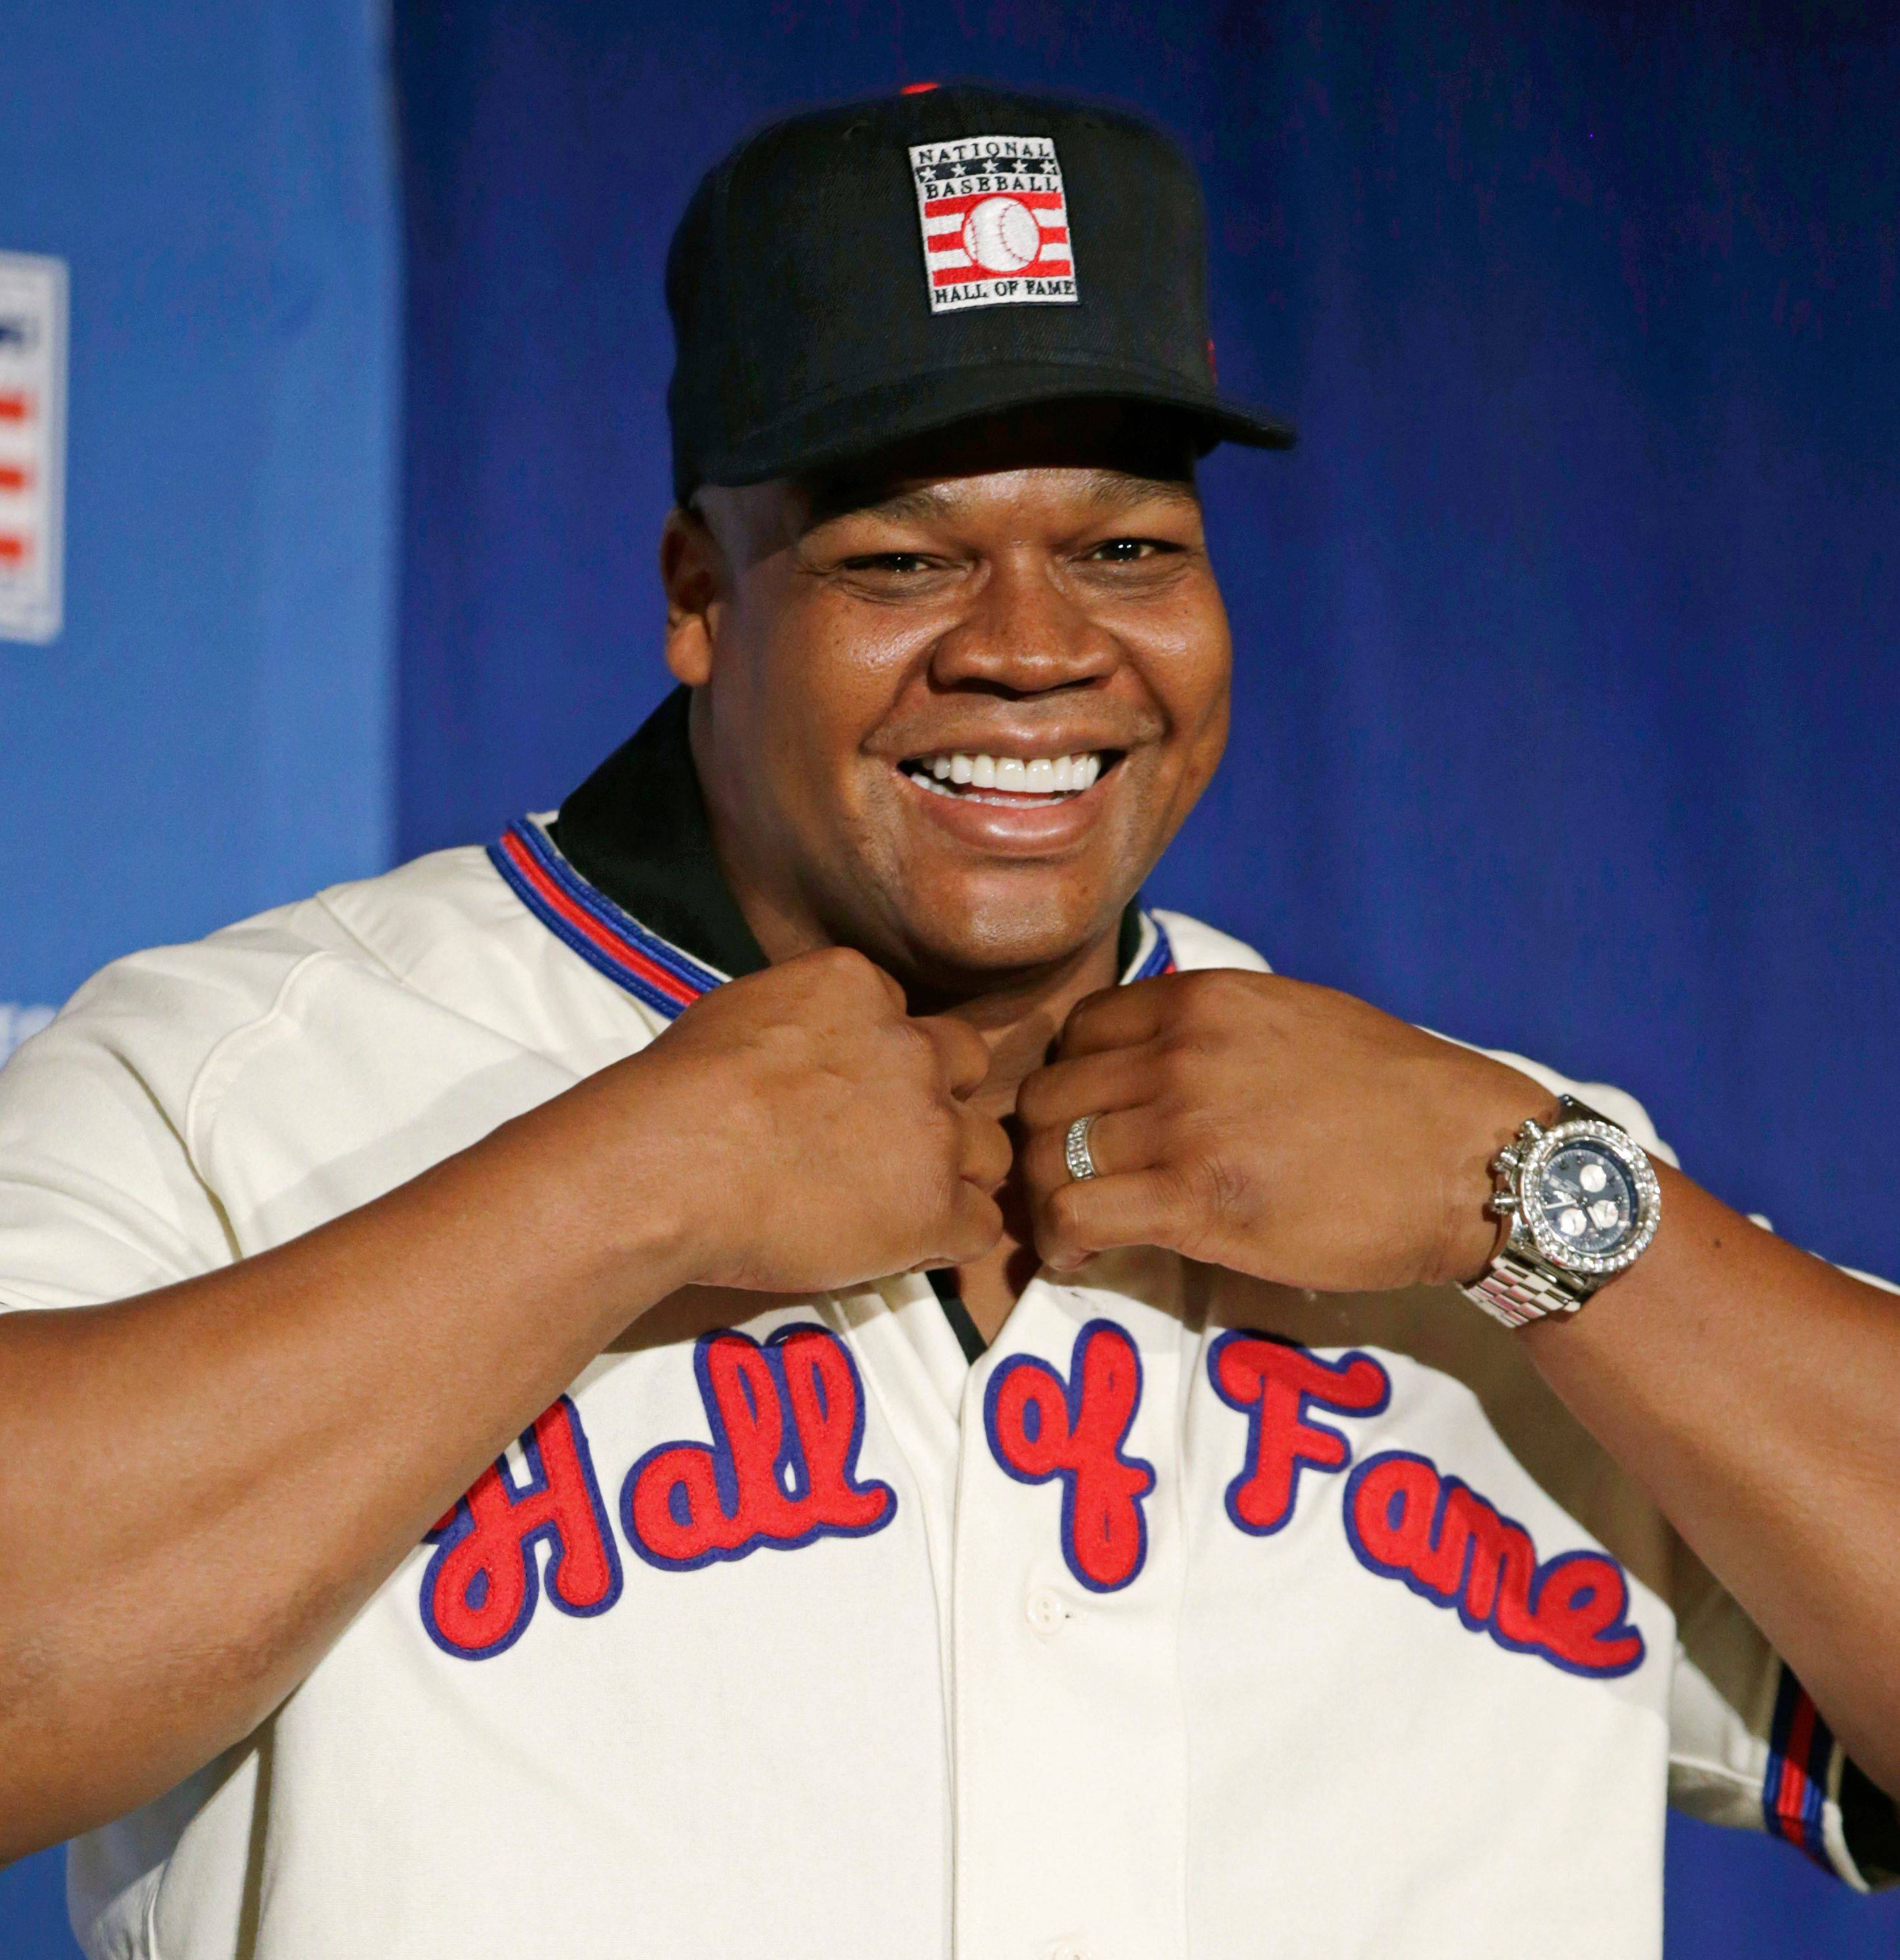 White Sox slugger Frank Thomas dons his Hall of Fame cap and jersey during a press conference announcing his election into the National Baseball Hall of Fame on Thursday in New York.